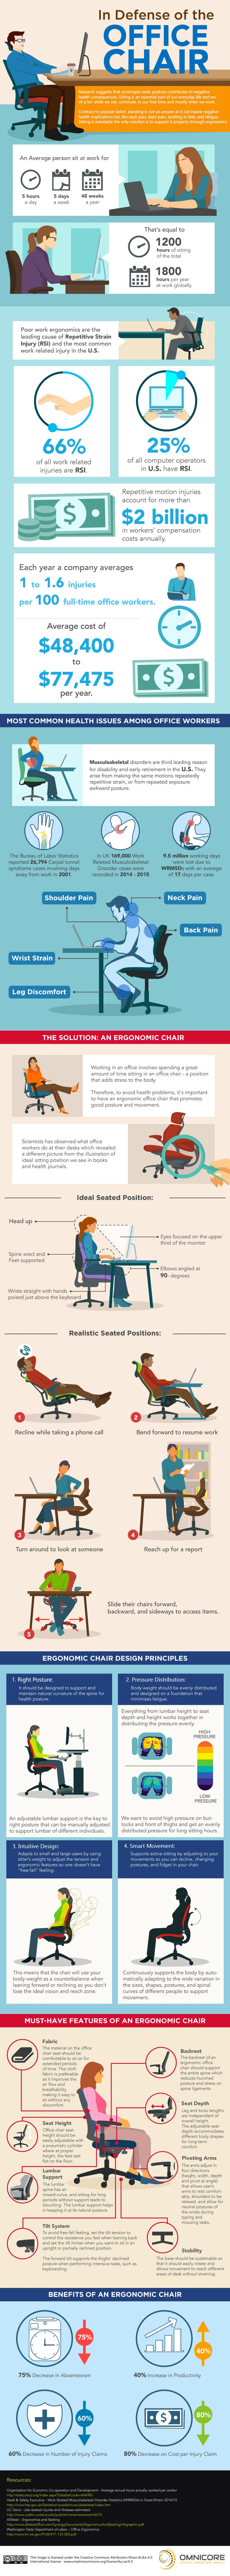 office chair (Infographic)